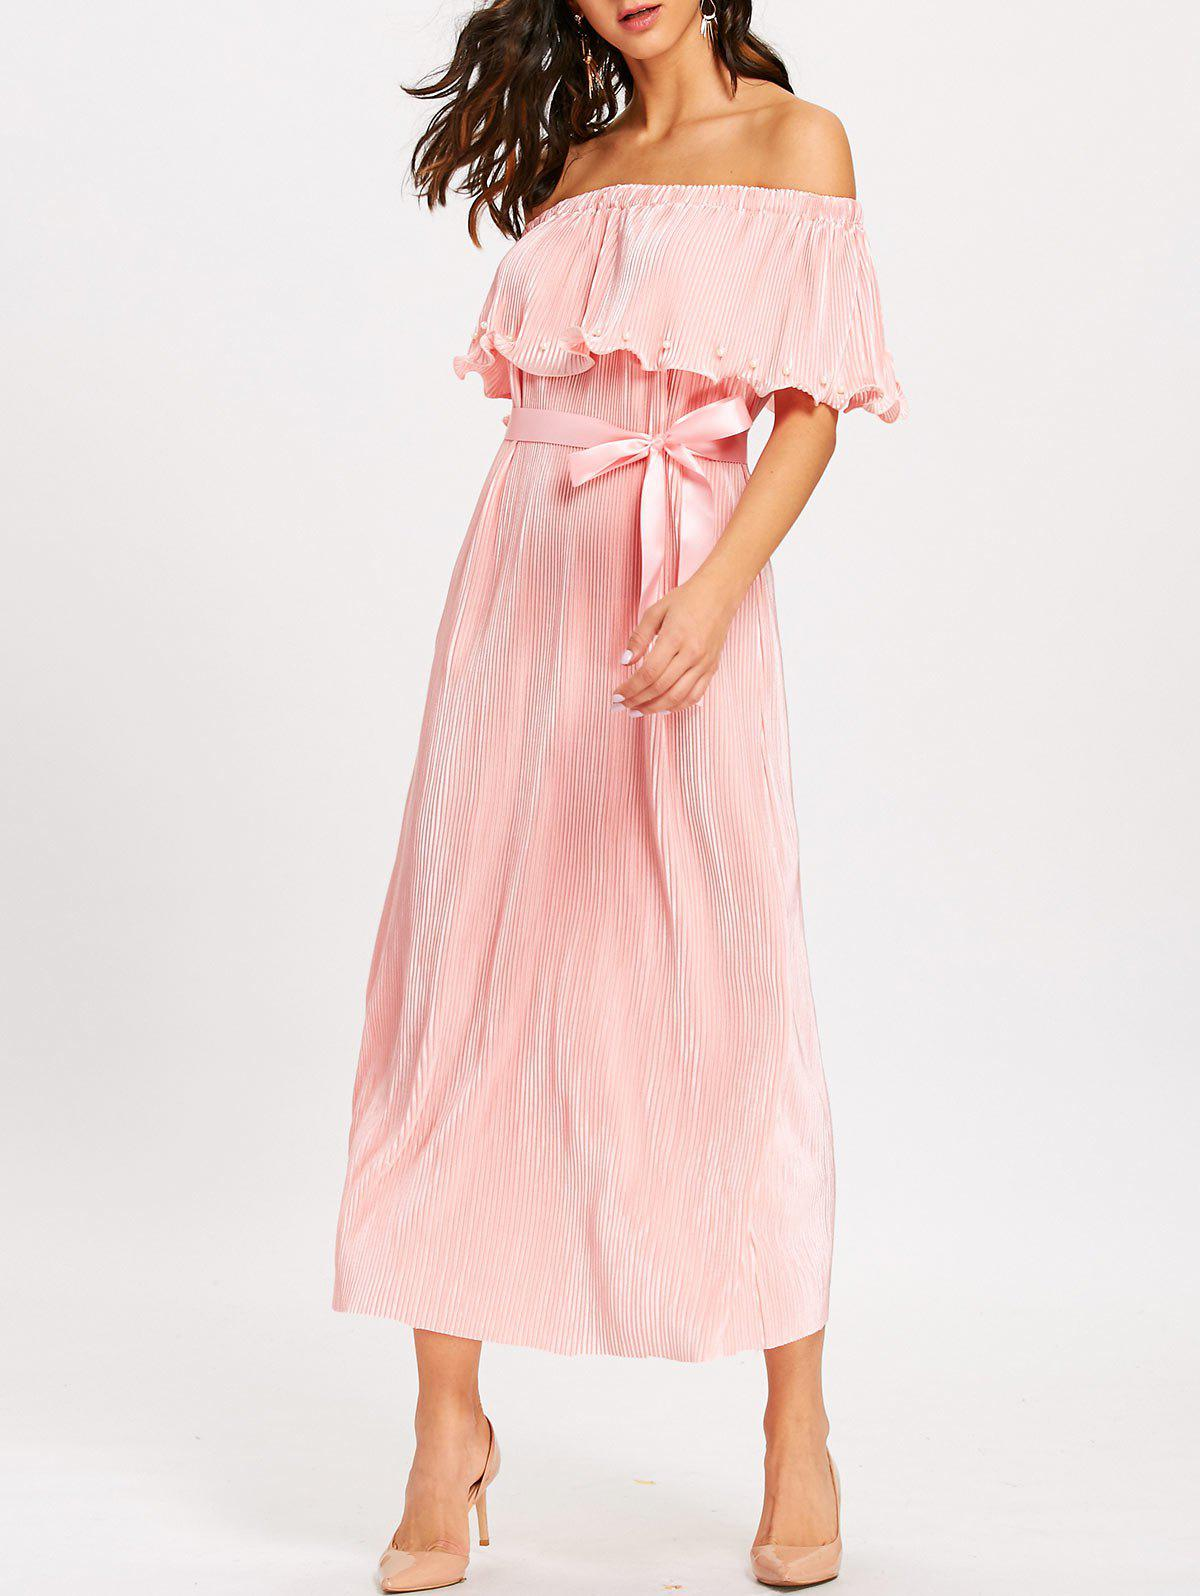 34f79901213 2019 OFF The Shoulder Flounce Pleated Maxi Dress